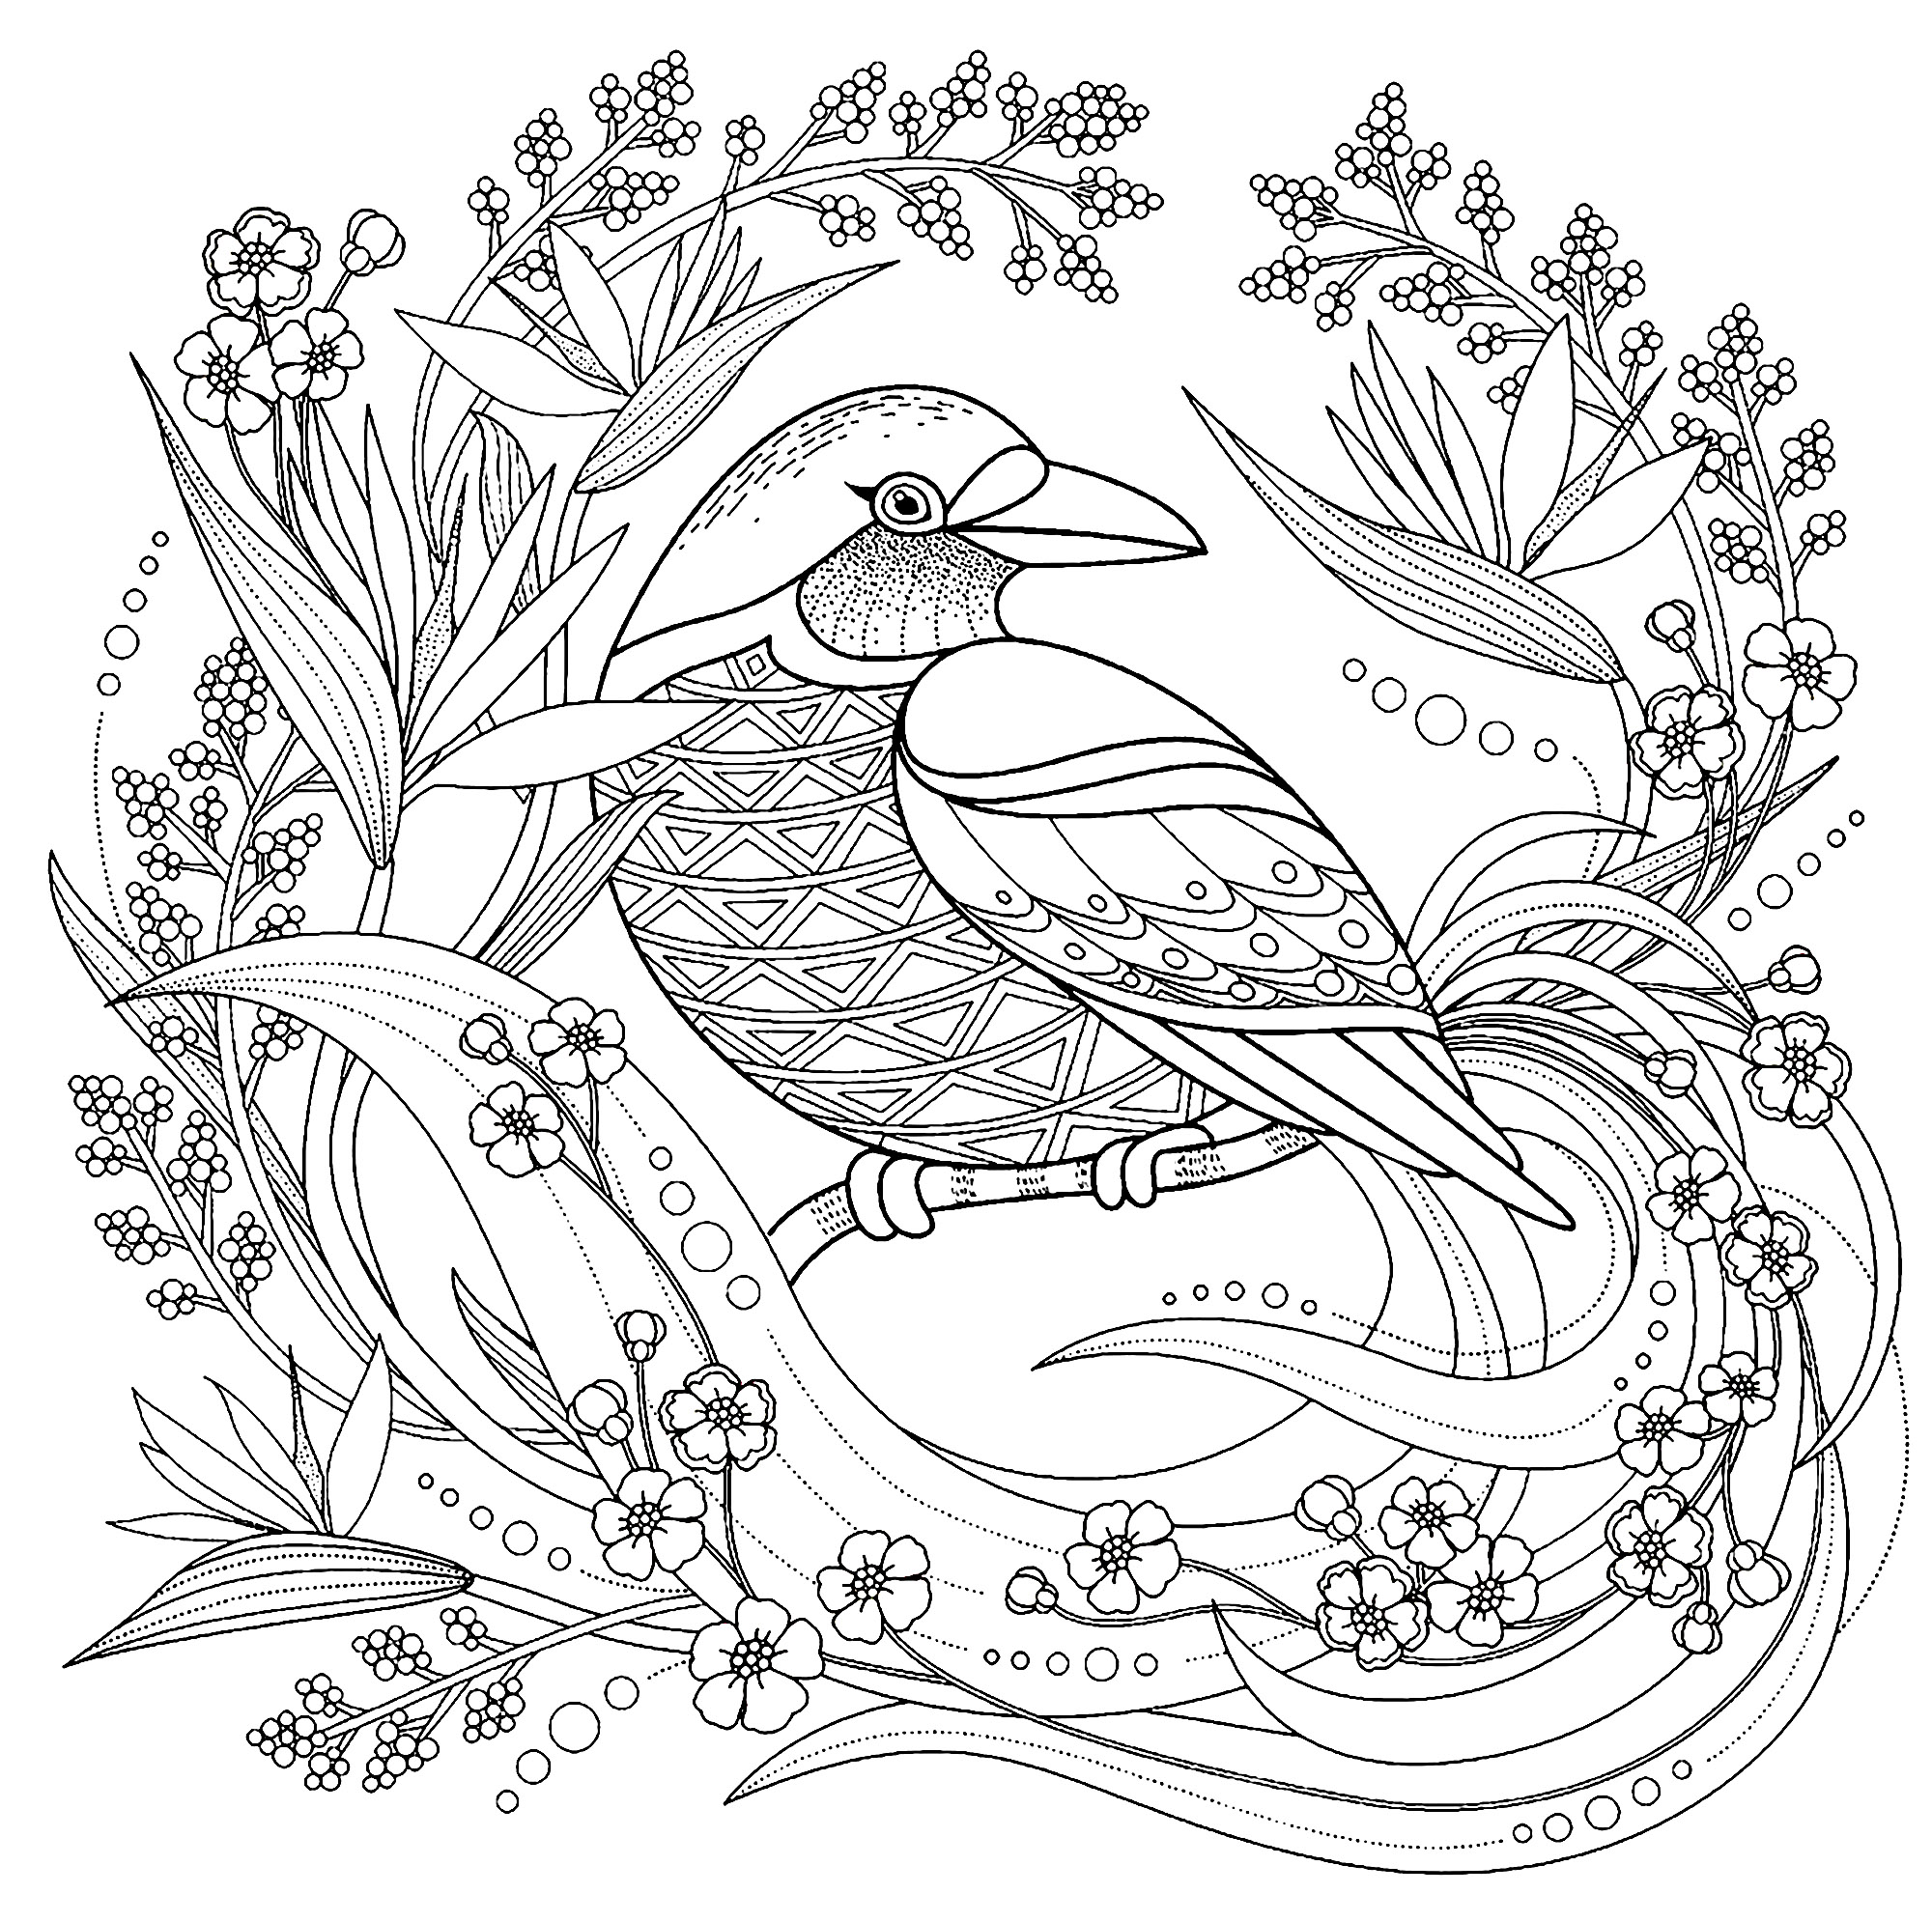 coloring pages of birds cute bird coloring page woo jr kids activities of coloring pages birds